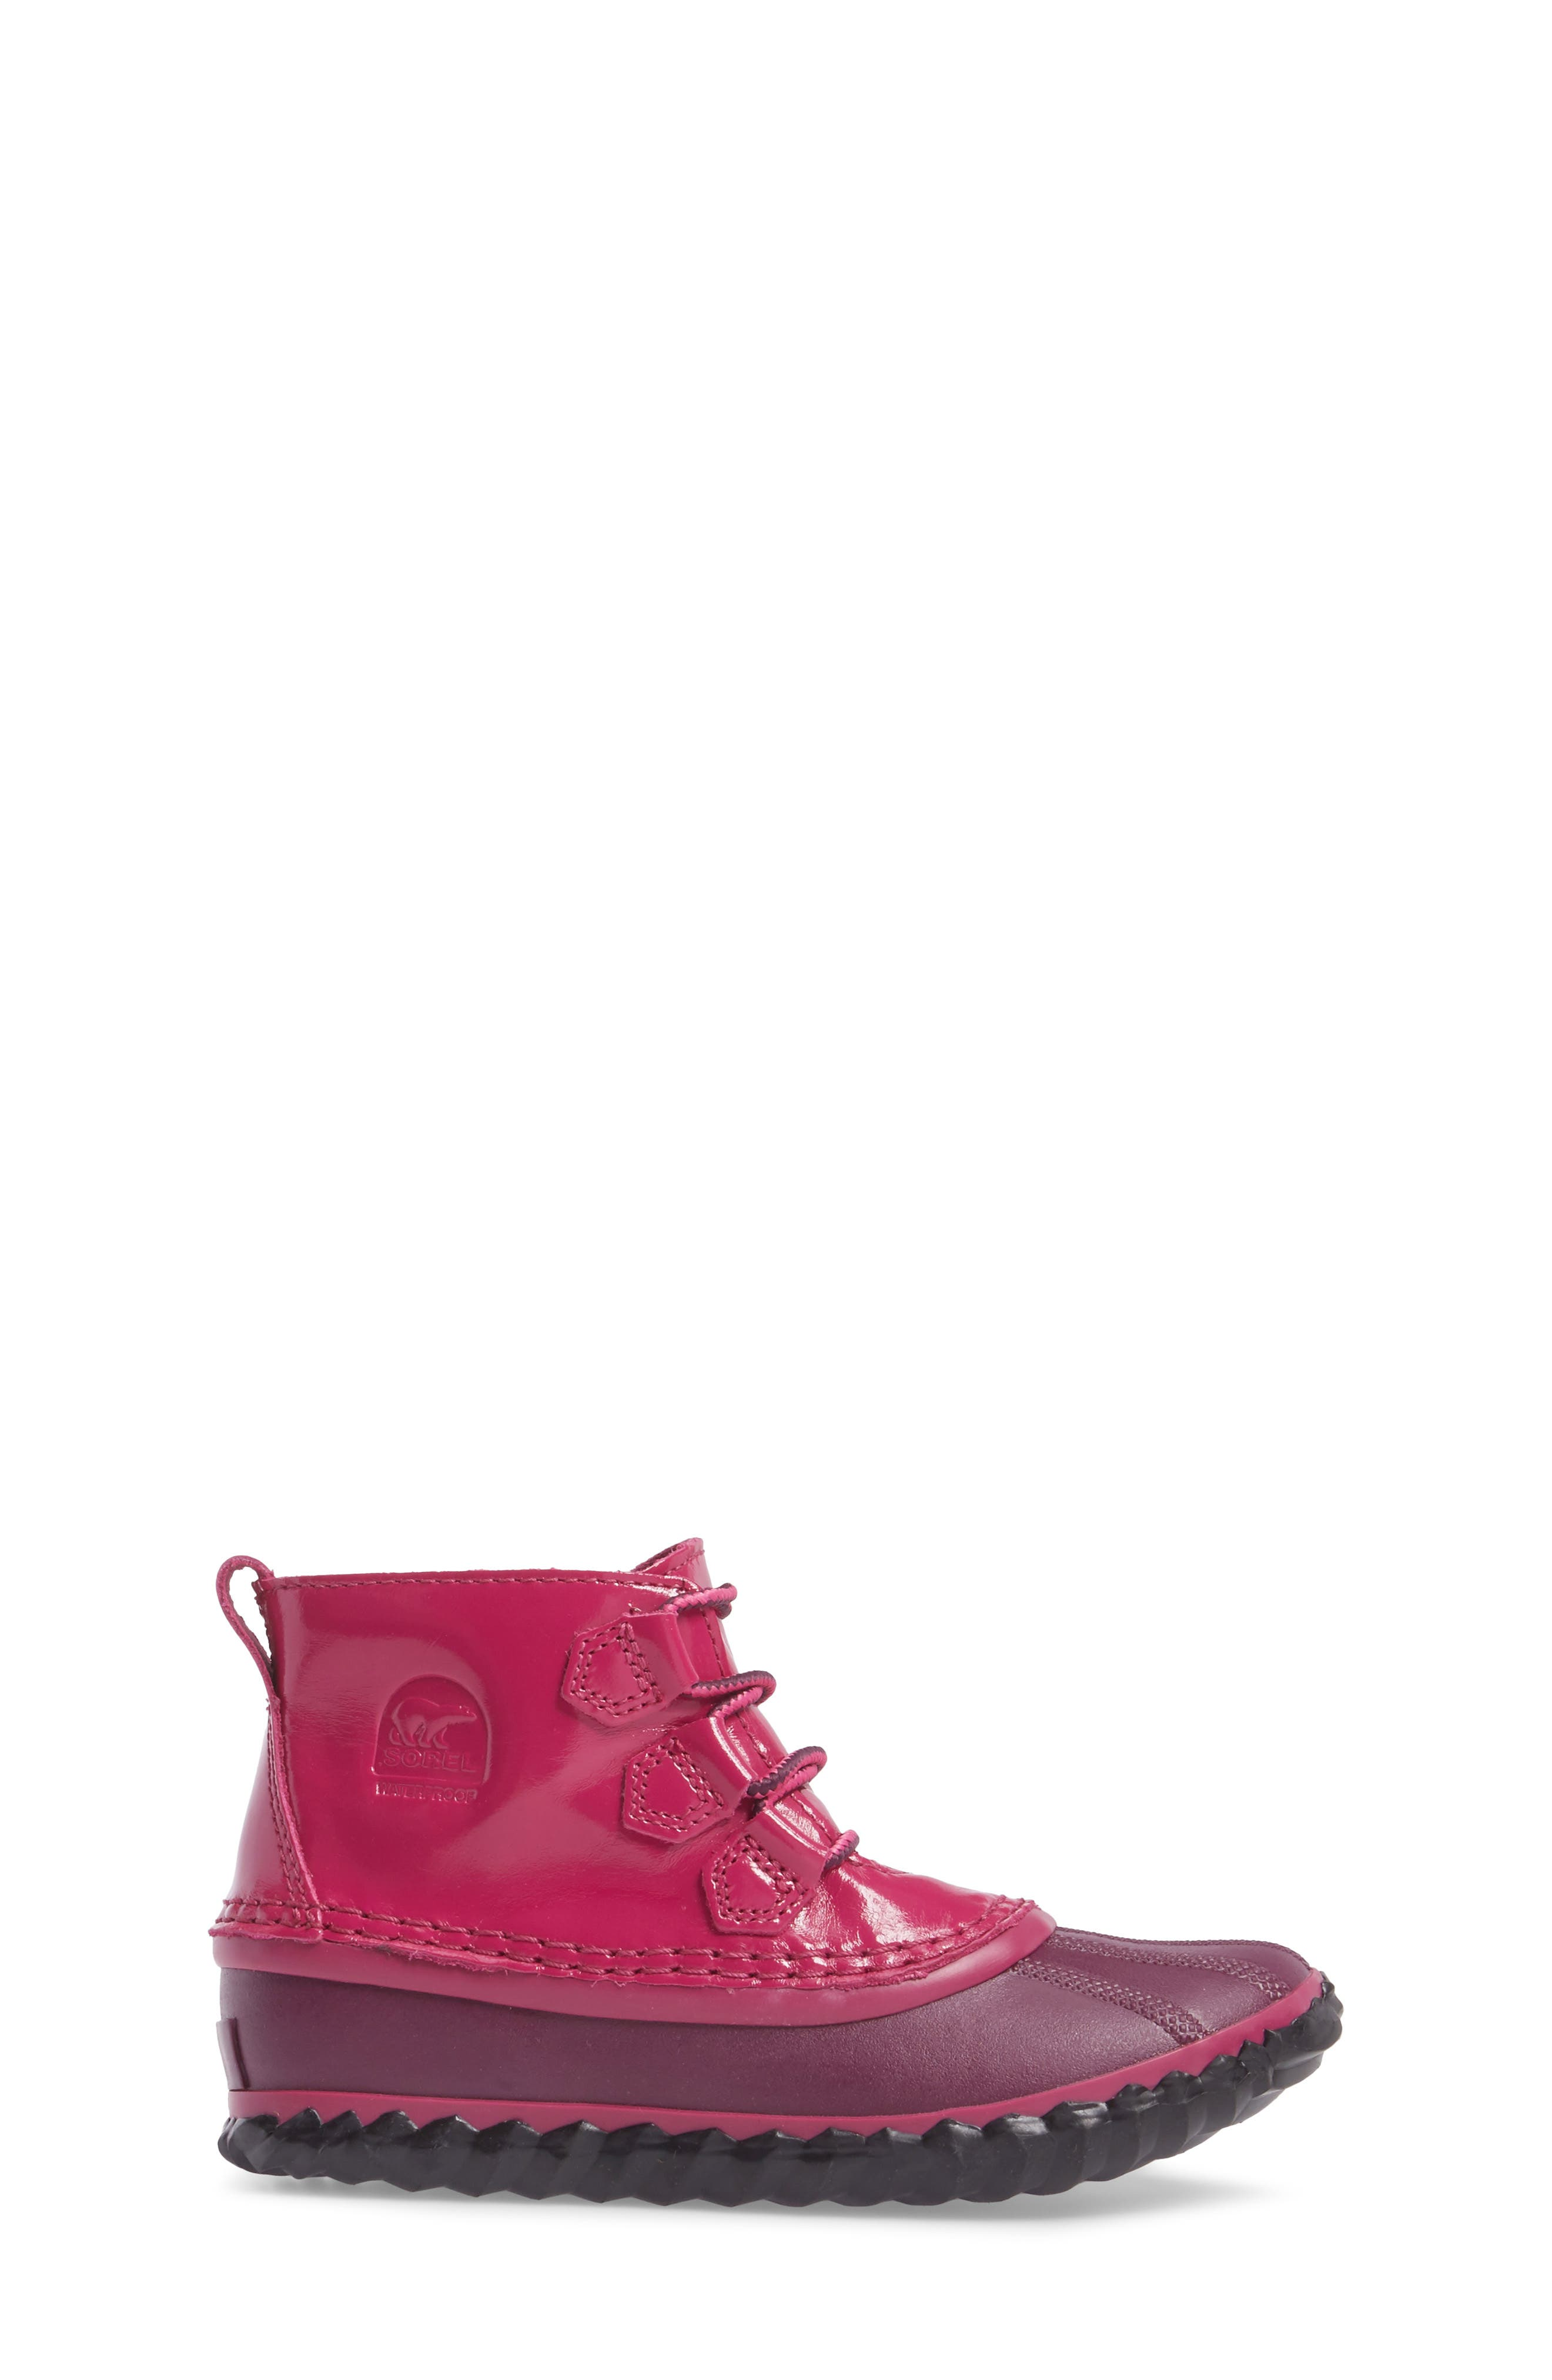 Out 'N About<sup>®</sup> Waterproof Boot,                             Alternate thumbnail 6, color,